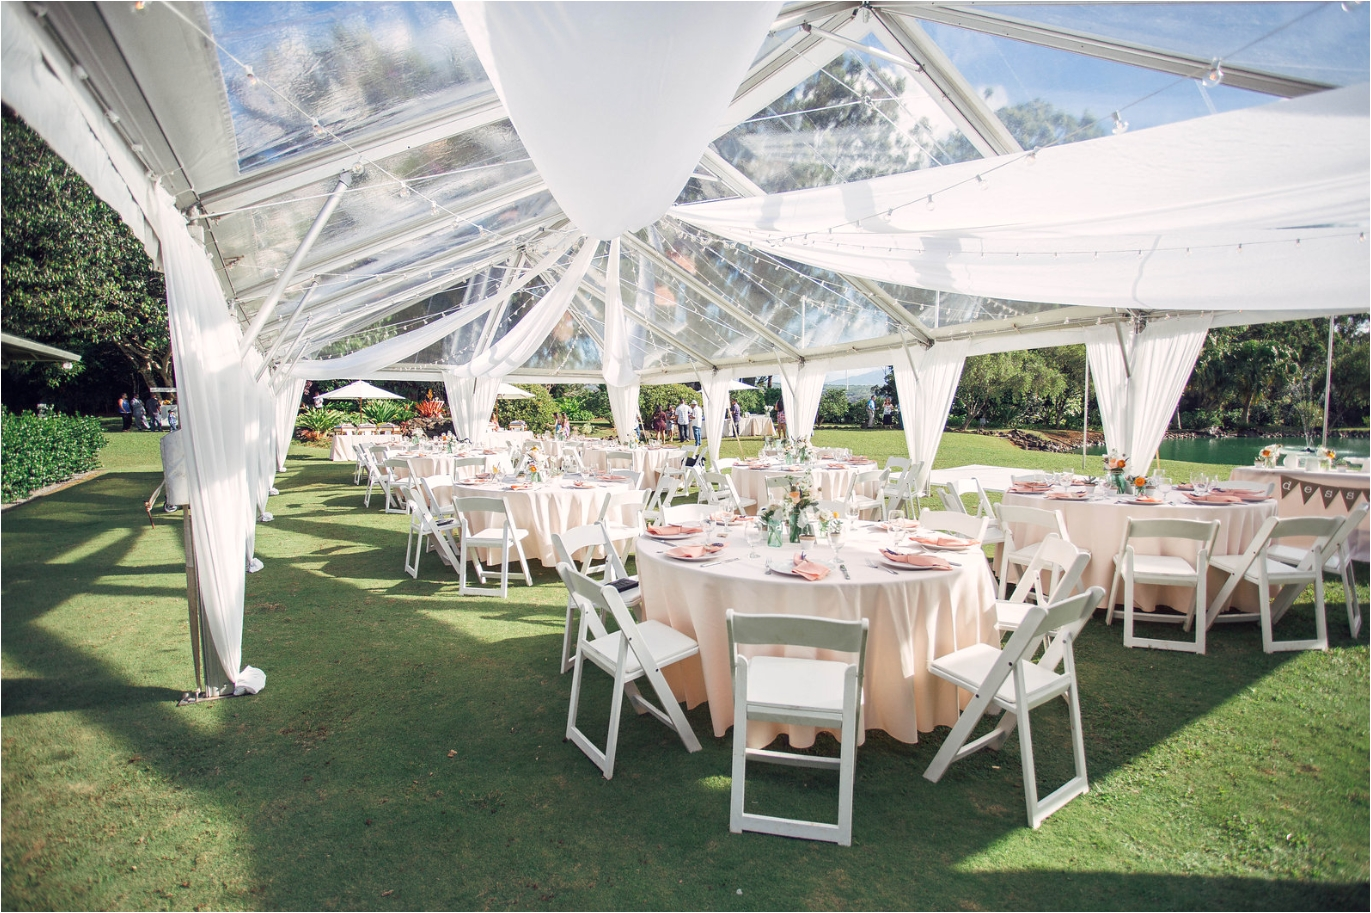 Tent Table and Chair Rentals Near Me 30×60 Clear top Tent with Wheel Style Cafe Lights and Swag Draping